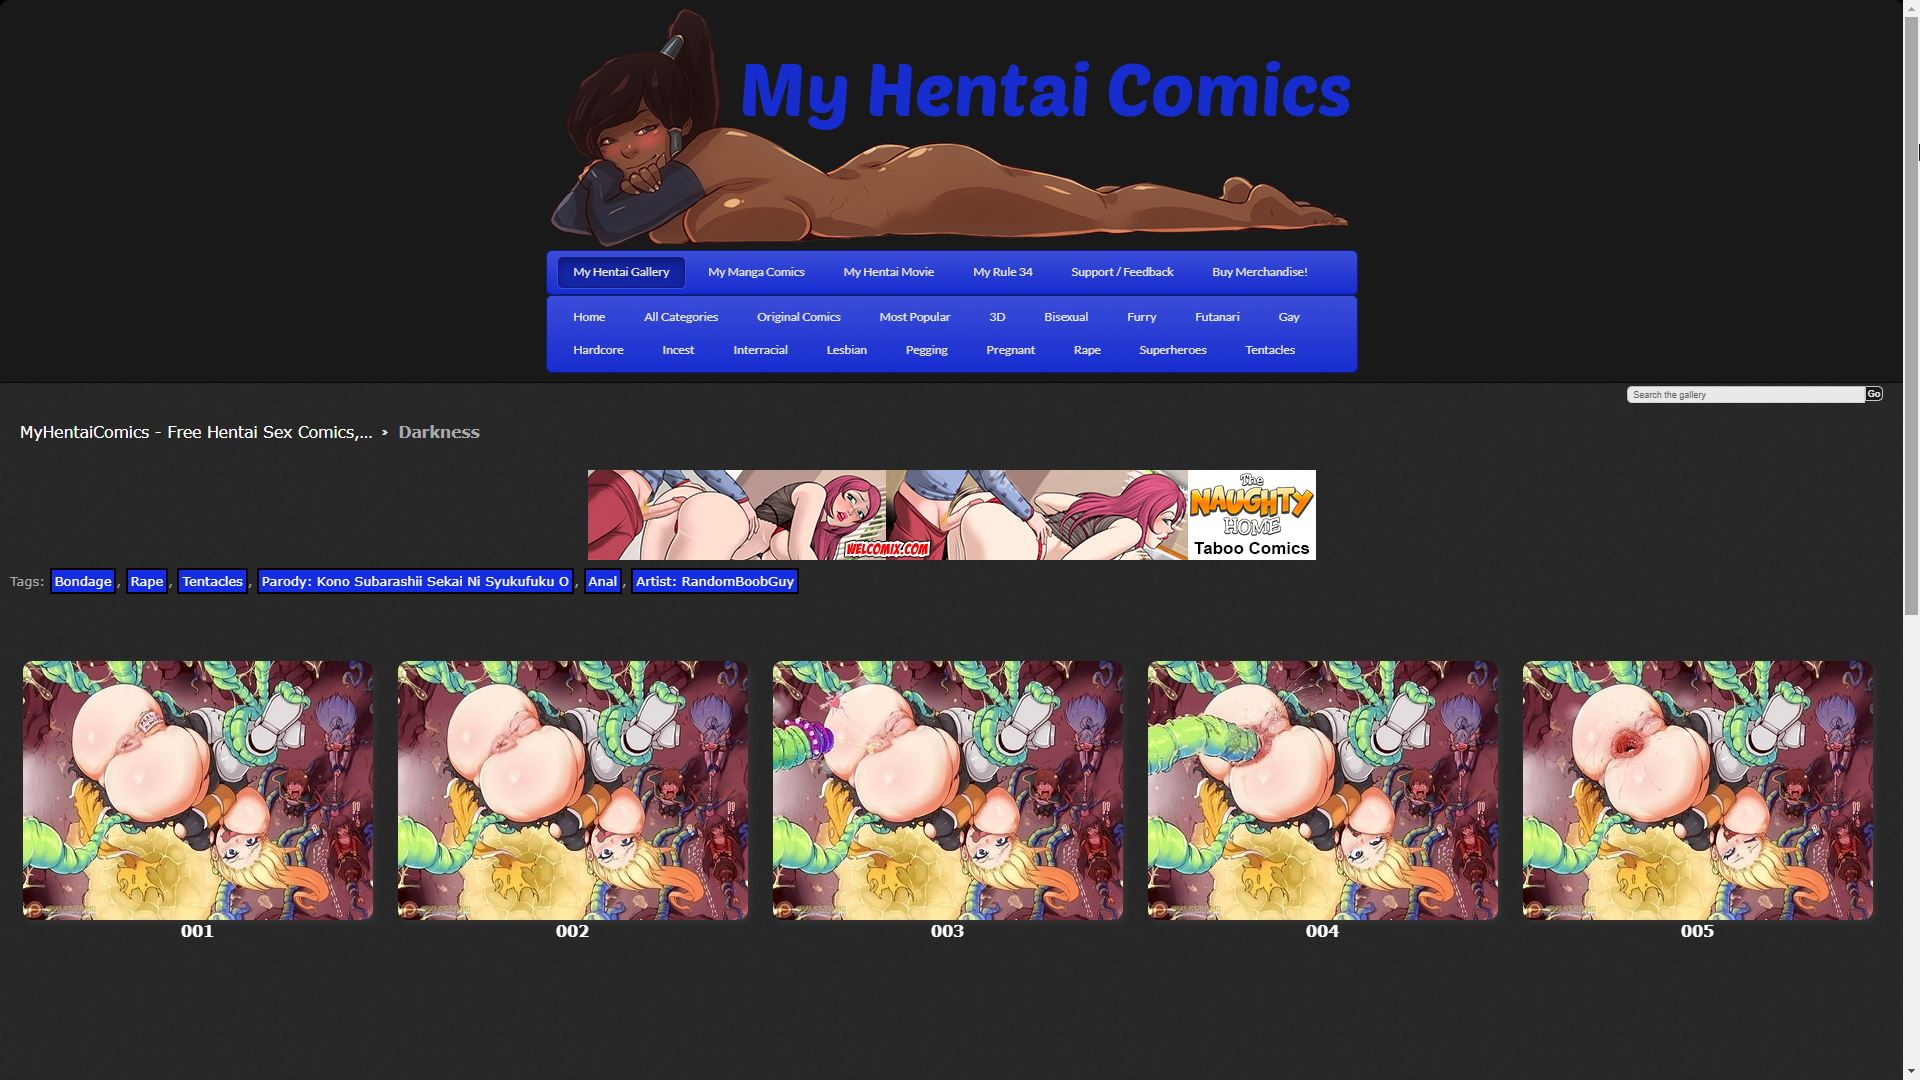 My Hentai Comics Darkness